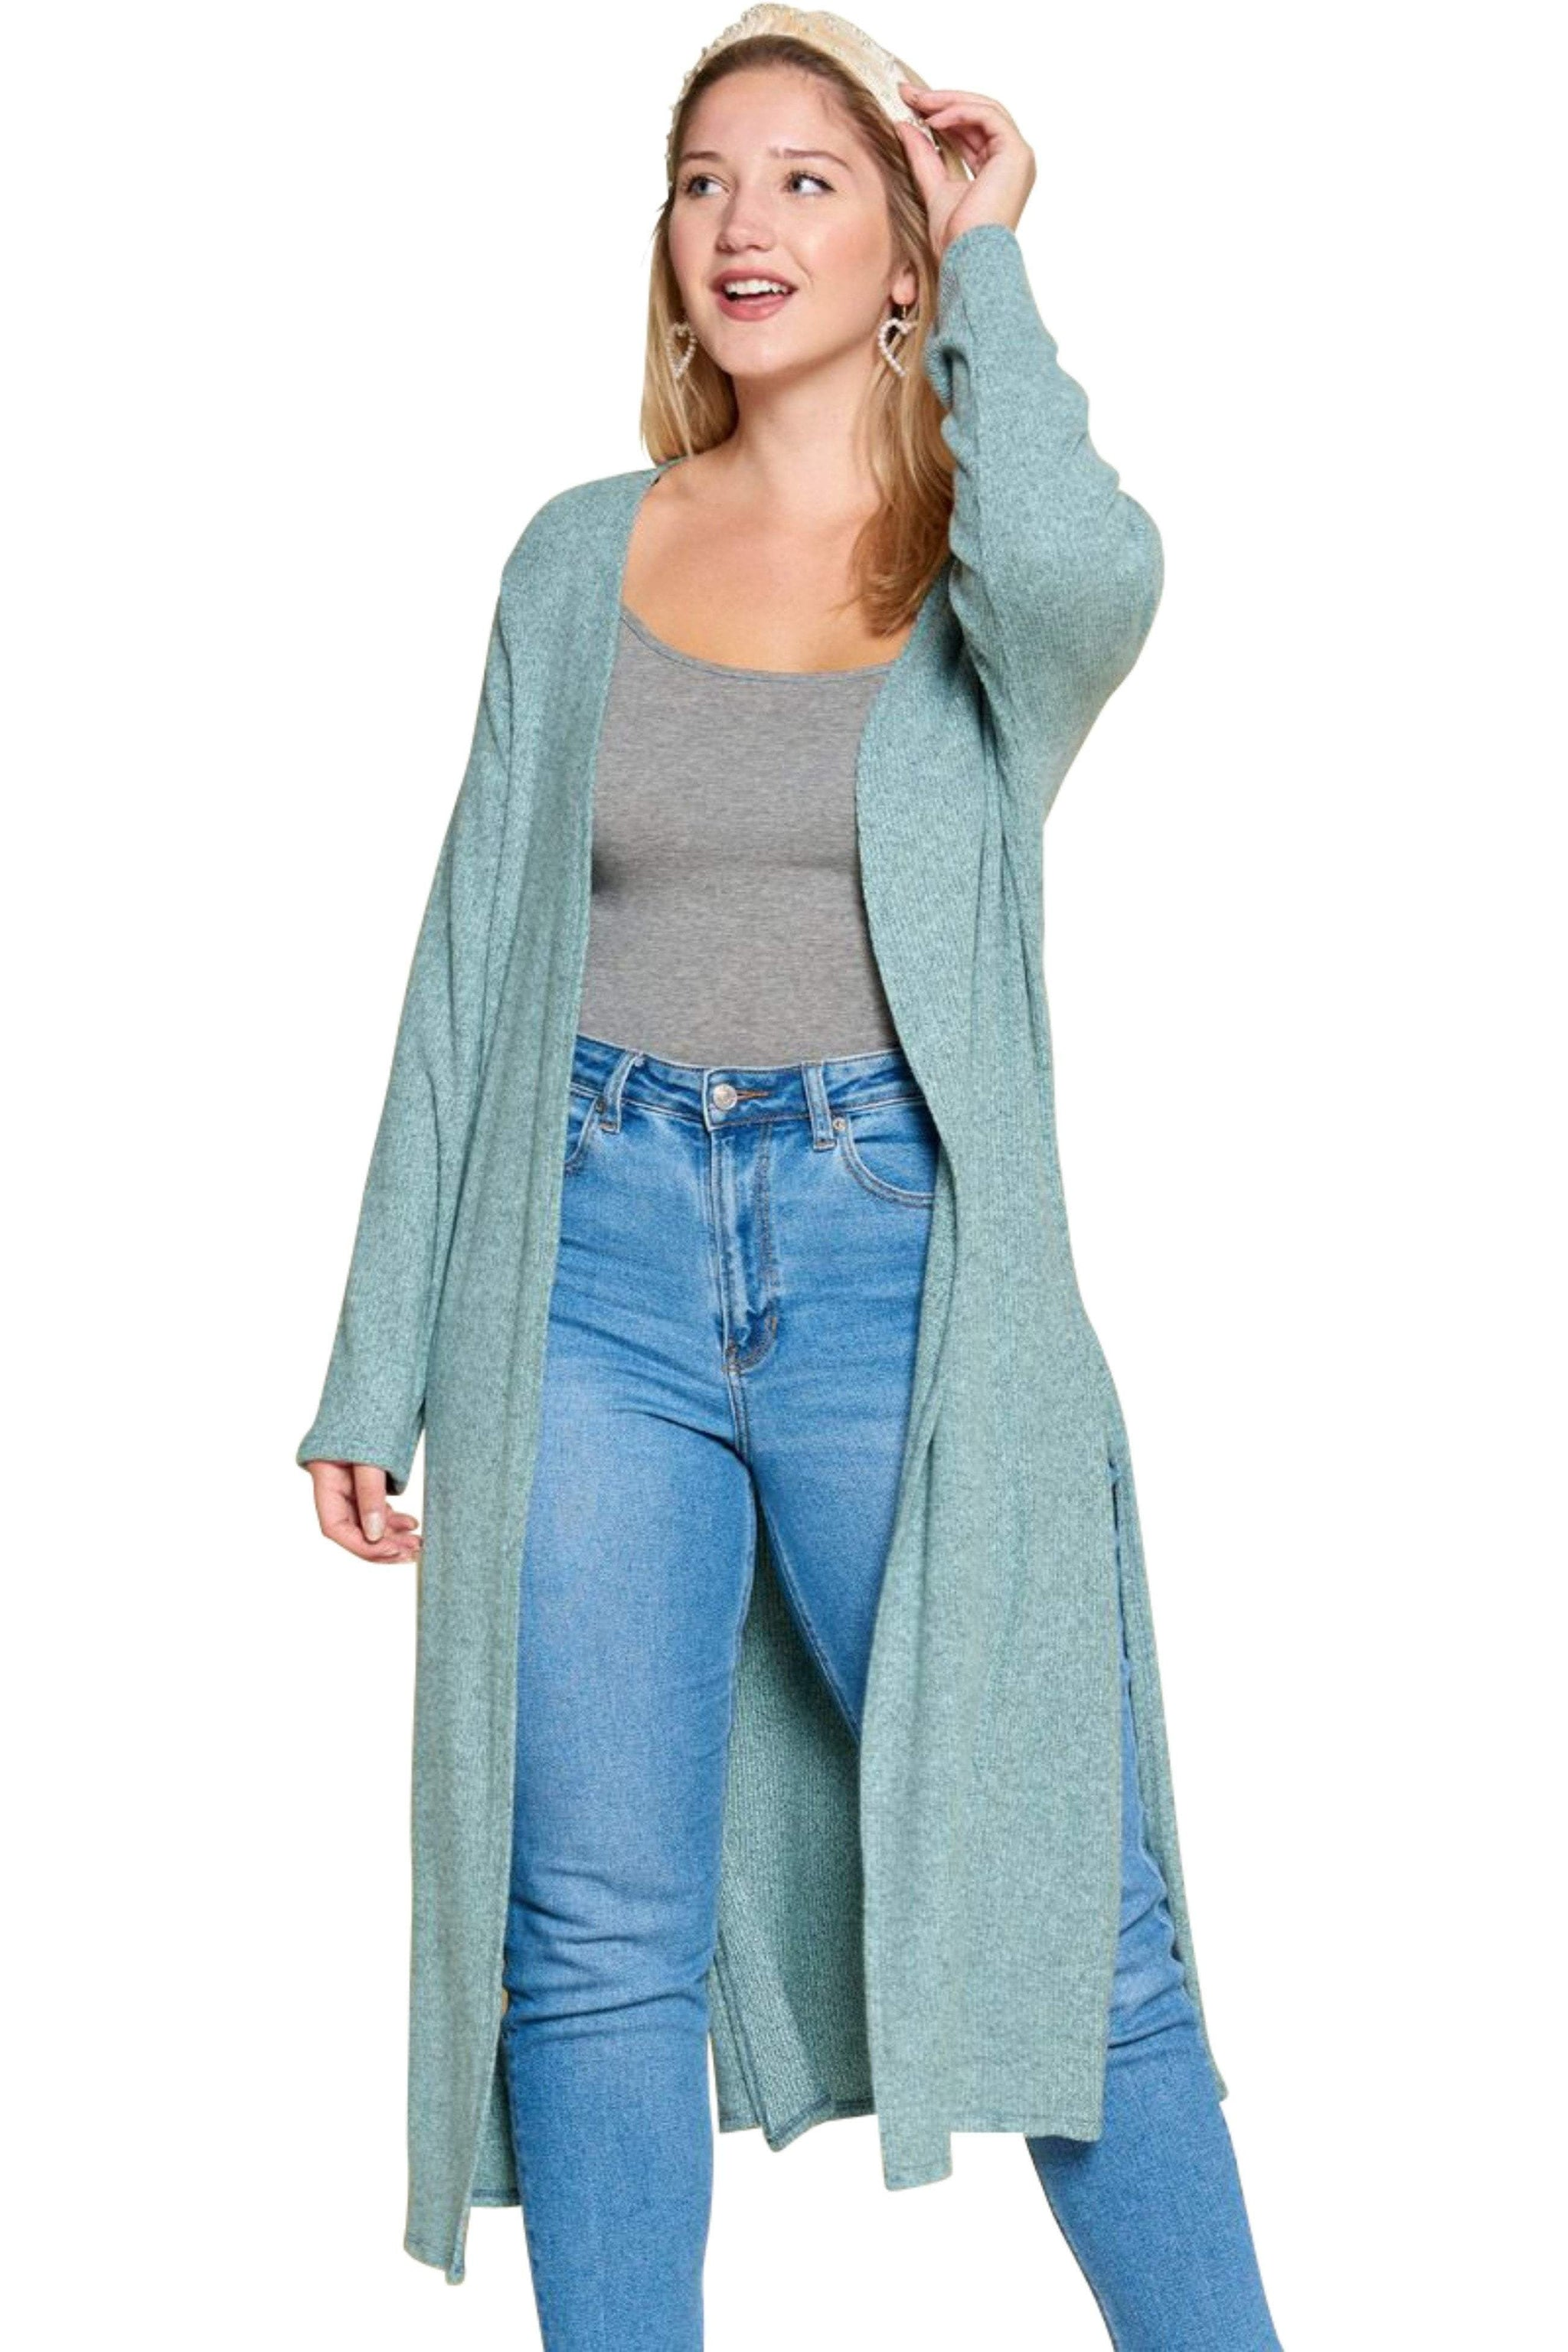 plus size Jacket aa. Eleanor Cardigan - Ice Blue